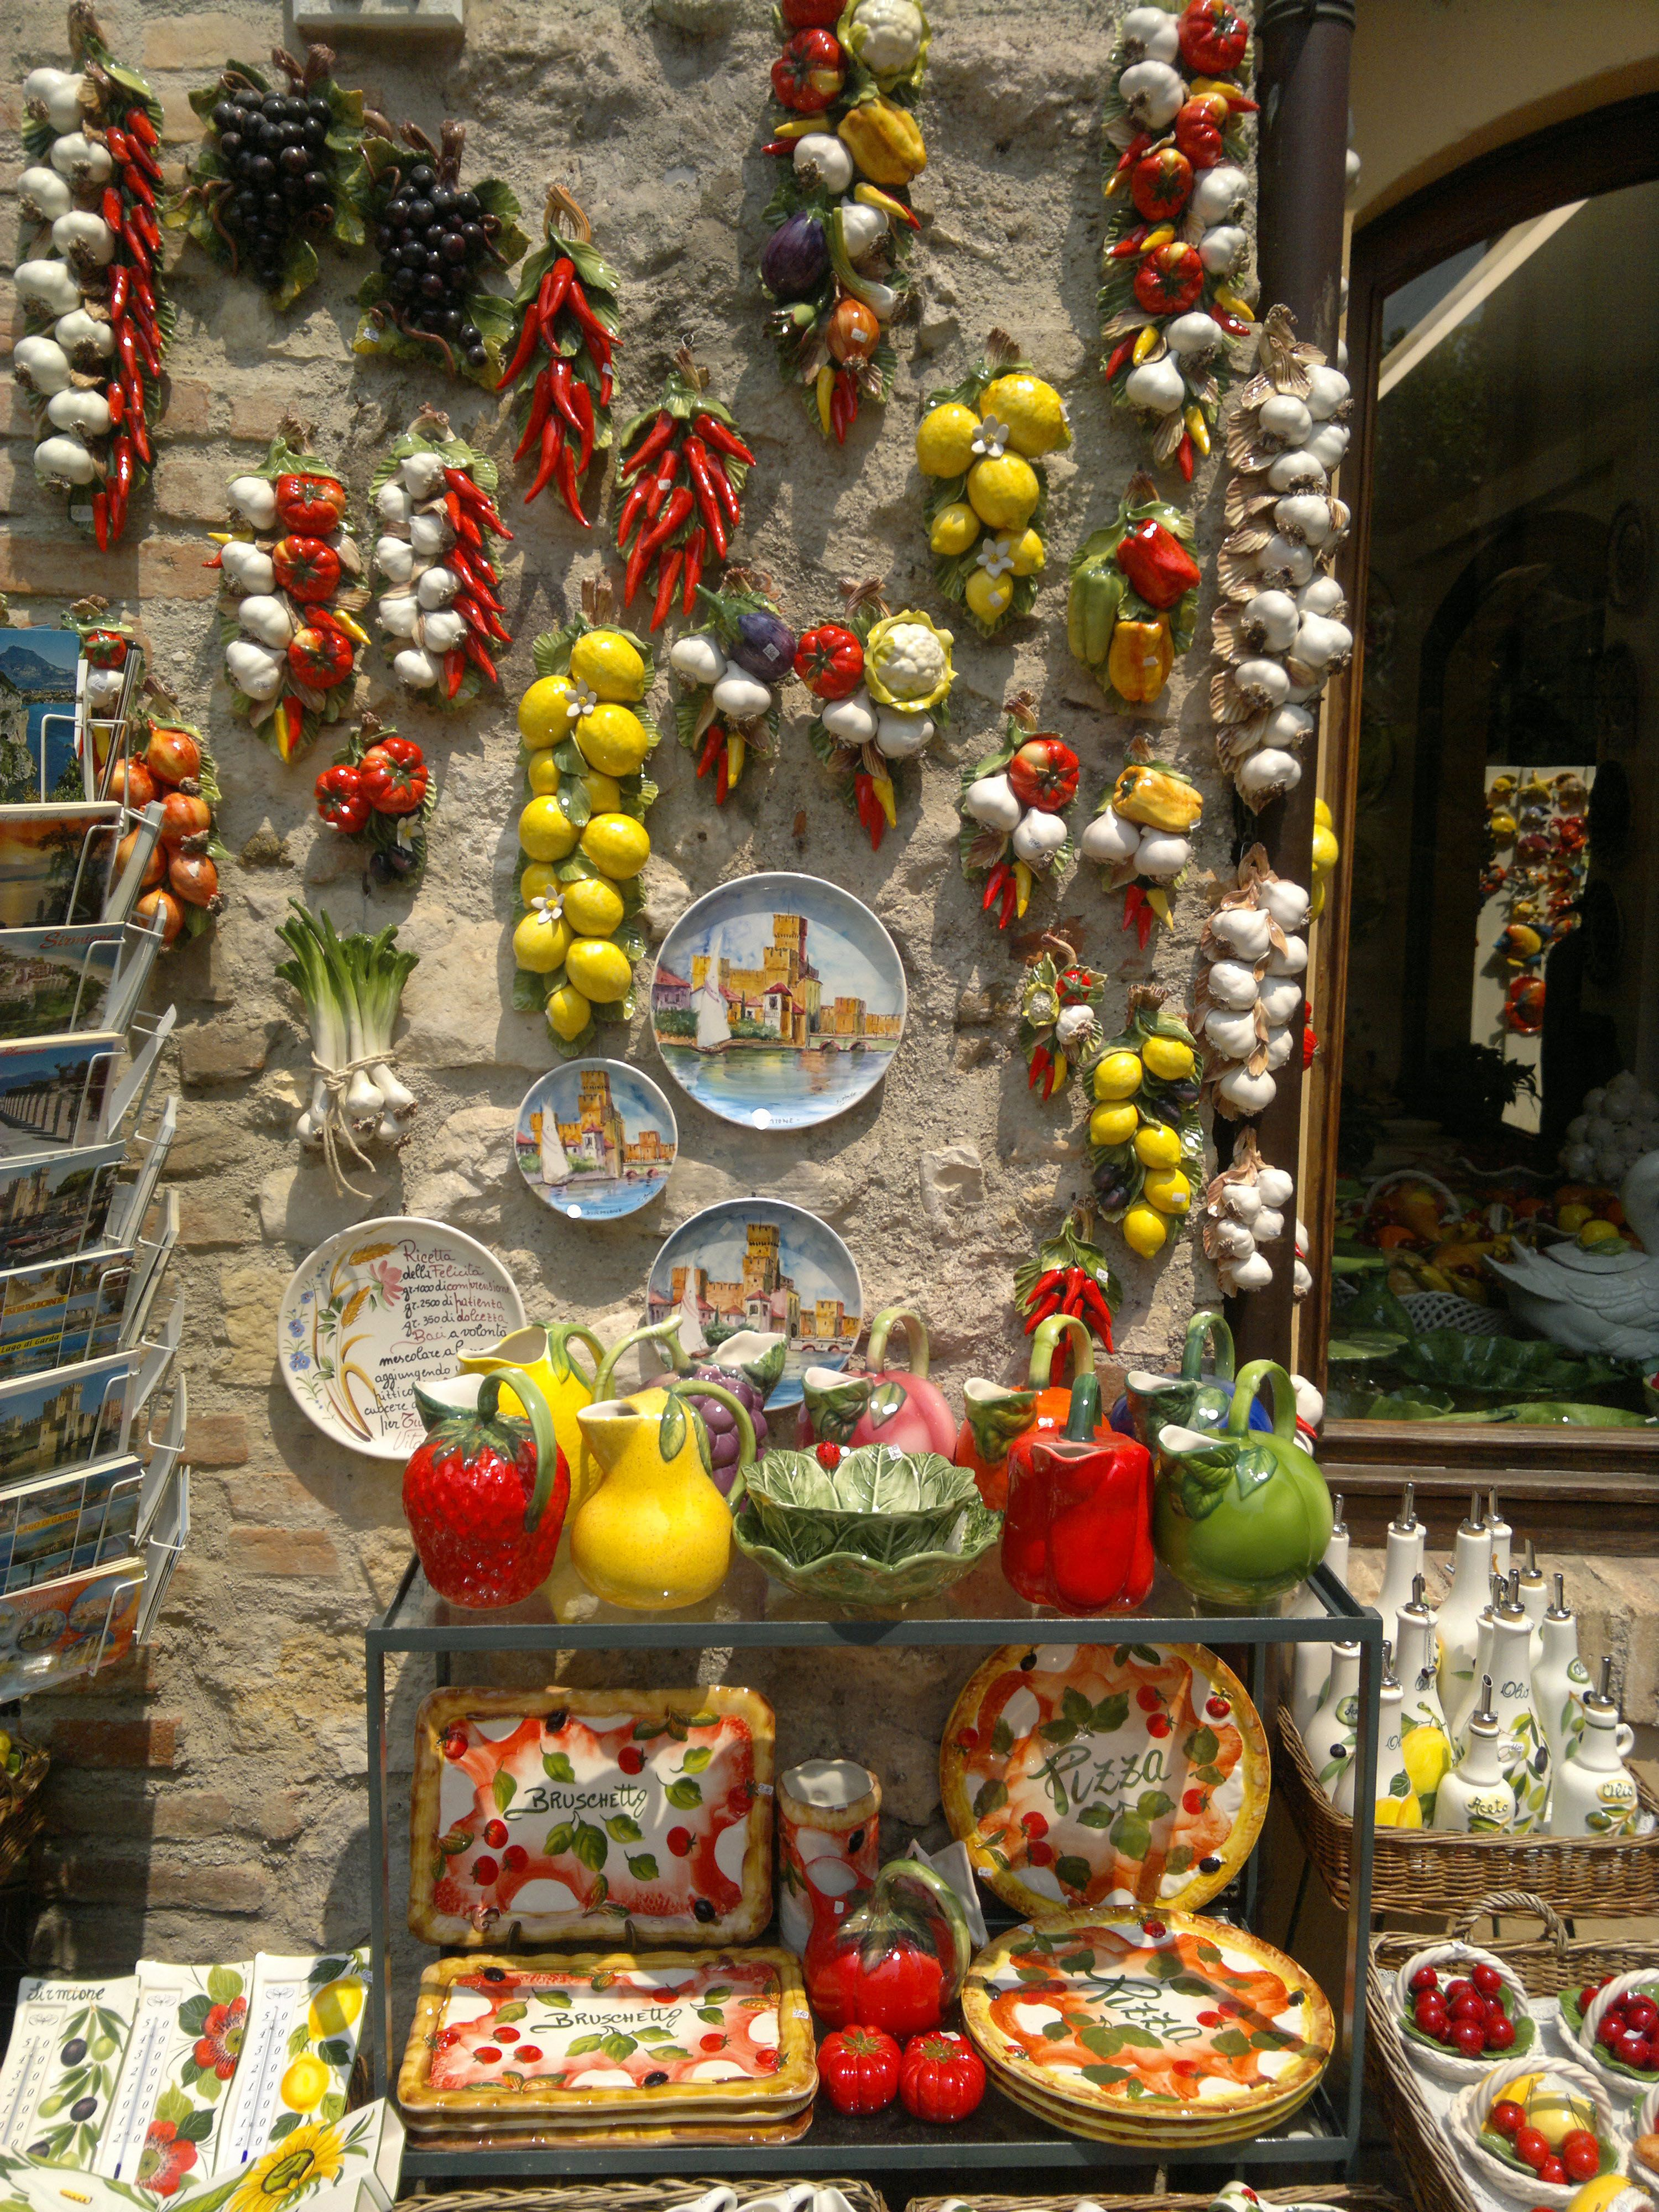 A funny little shop in Sirmione (http://www.venice-italy-veneto.com/holiday-on-lake-garda.html)